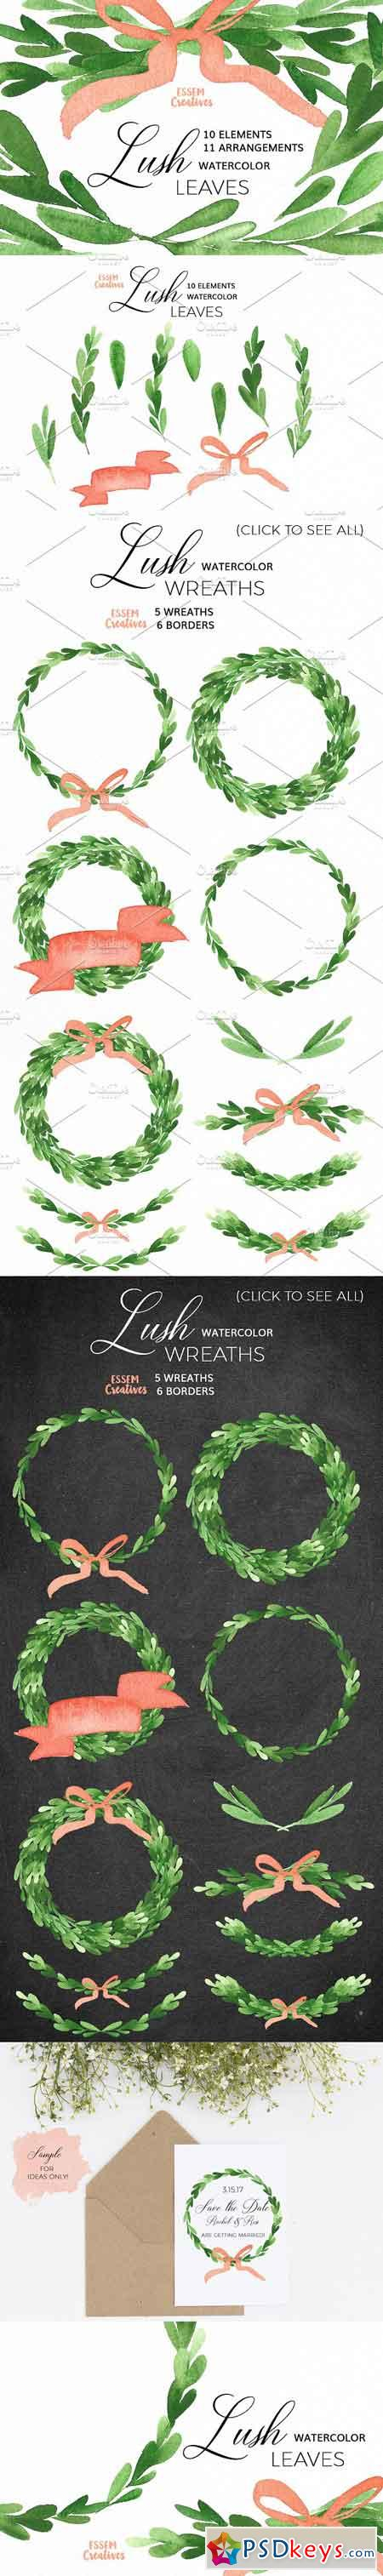 Watercolor Leaves & Wreaths - Olive 1121993